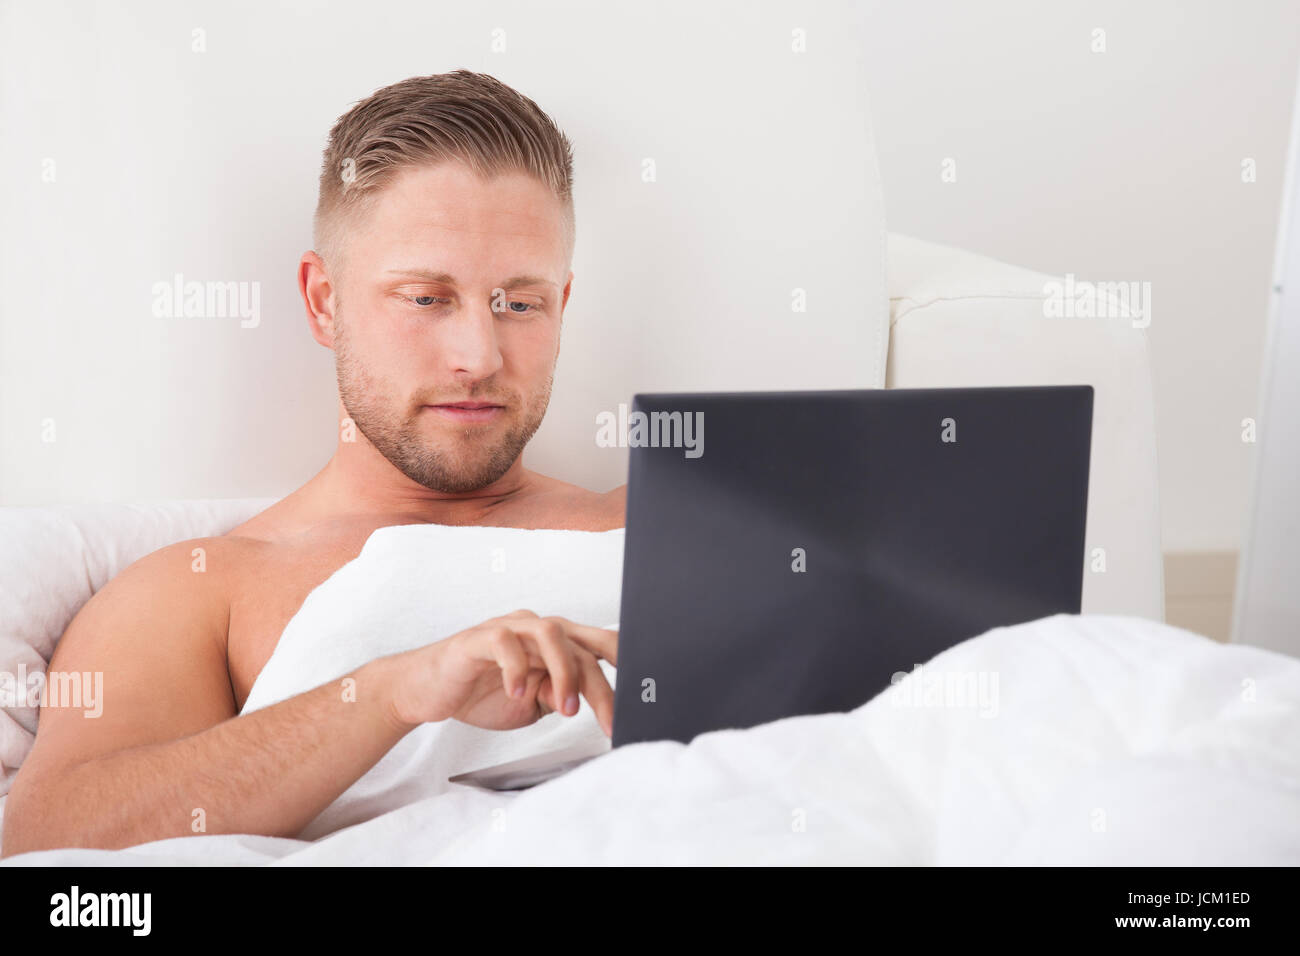 Man Sitting Up In Bed Against The Pillows Working On A Laptopputer  Smiling As He Reads The Screen